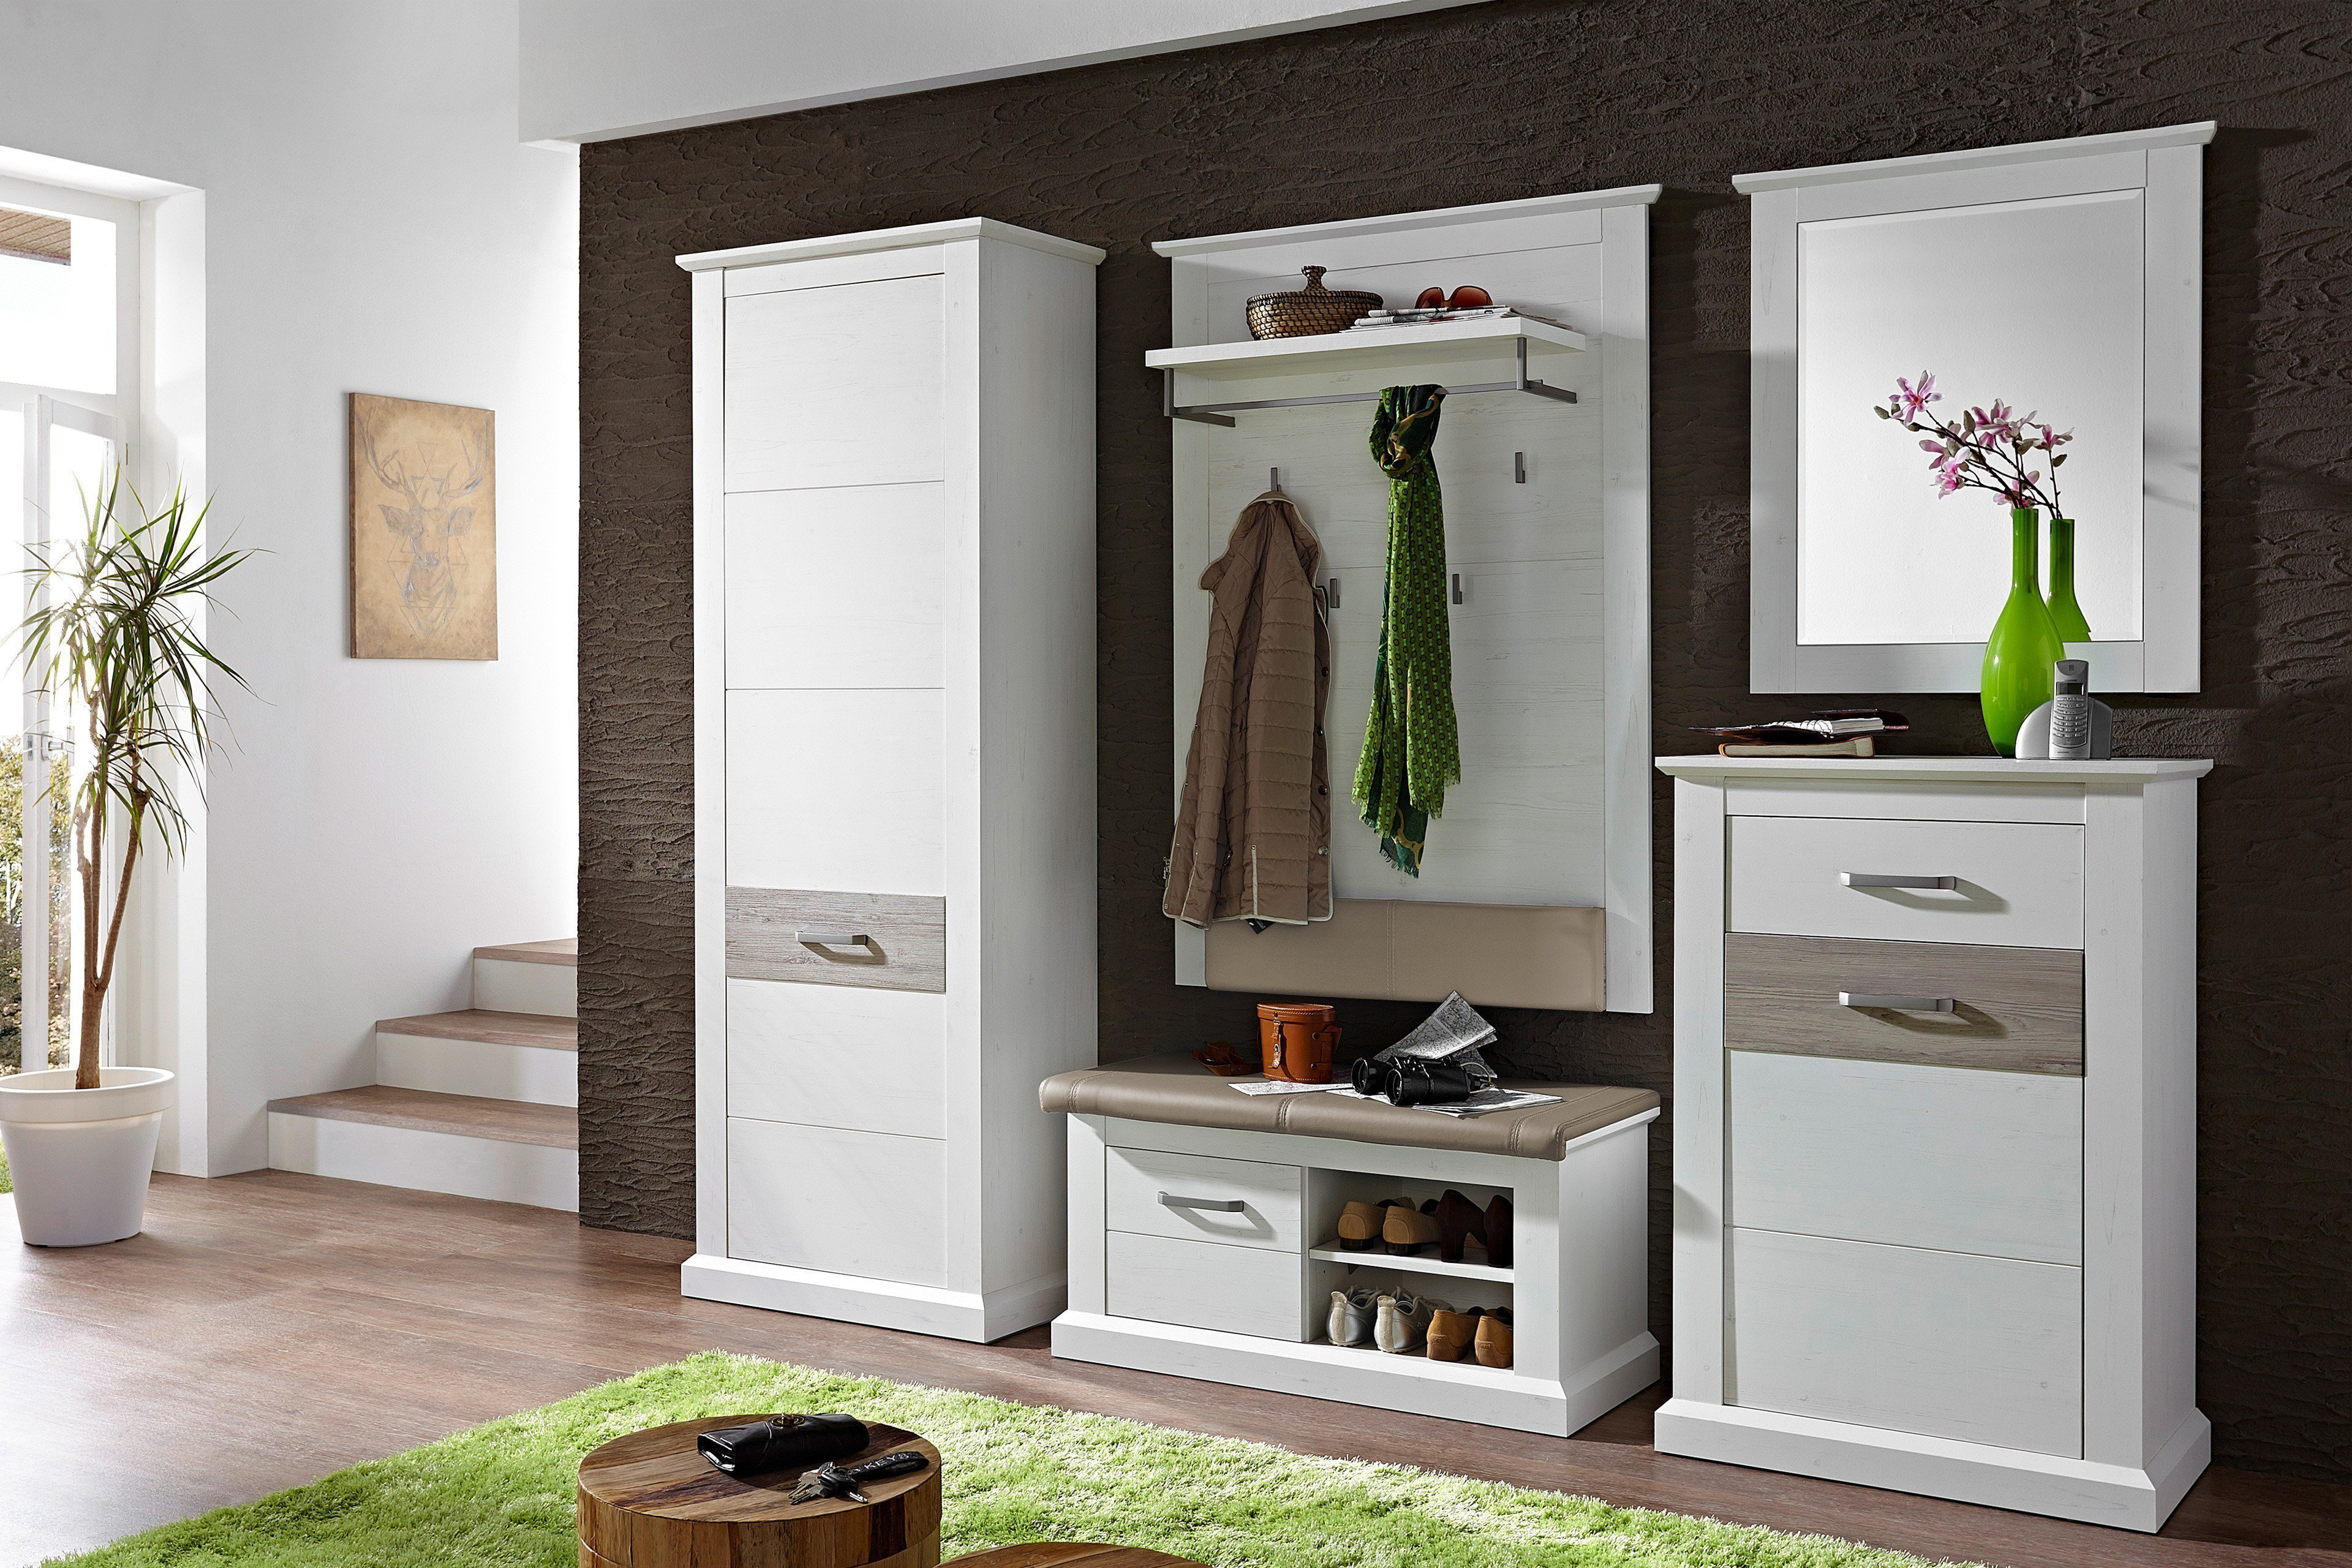 garderobe wei taupe innostyle modena m bel letz ihr online shop. Black Bedroom Furniture Sets. Home Design Ideas